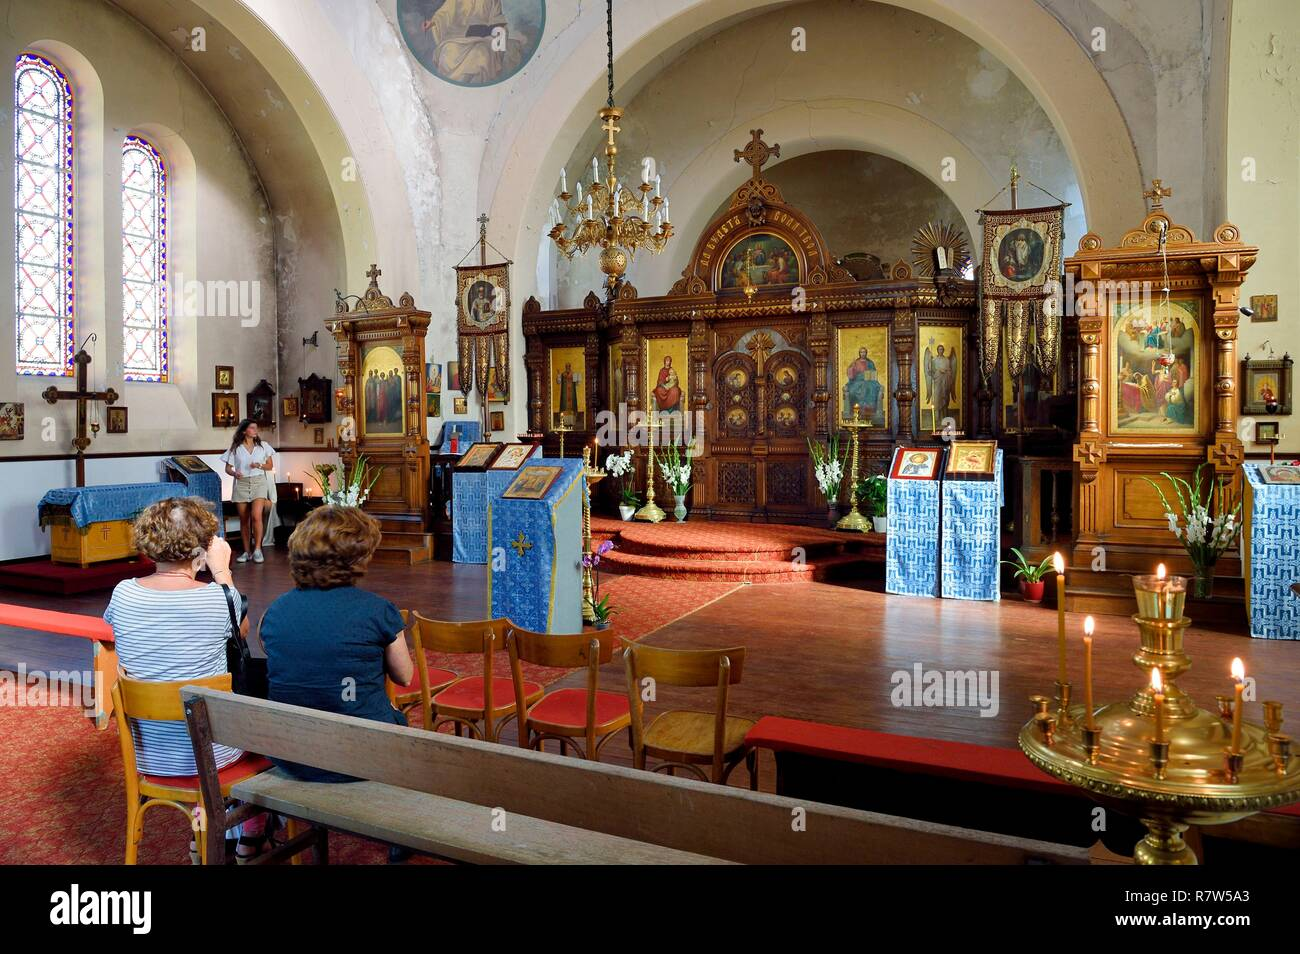 France, Pyrenees Atlantiques, Basque Country, Biarritz, the Russian Orthodox Church built in 1892 on the imperial estate - Stock Image